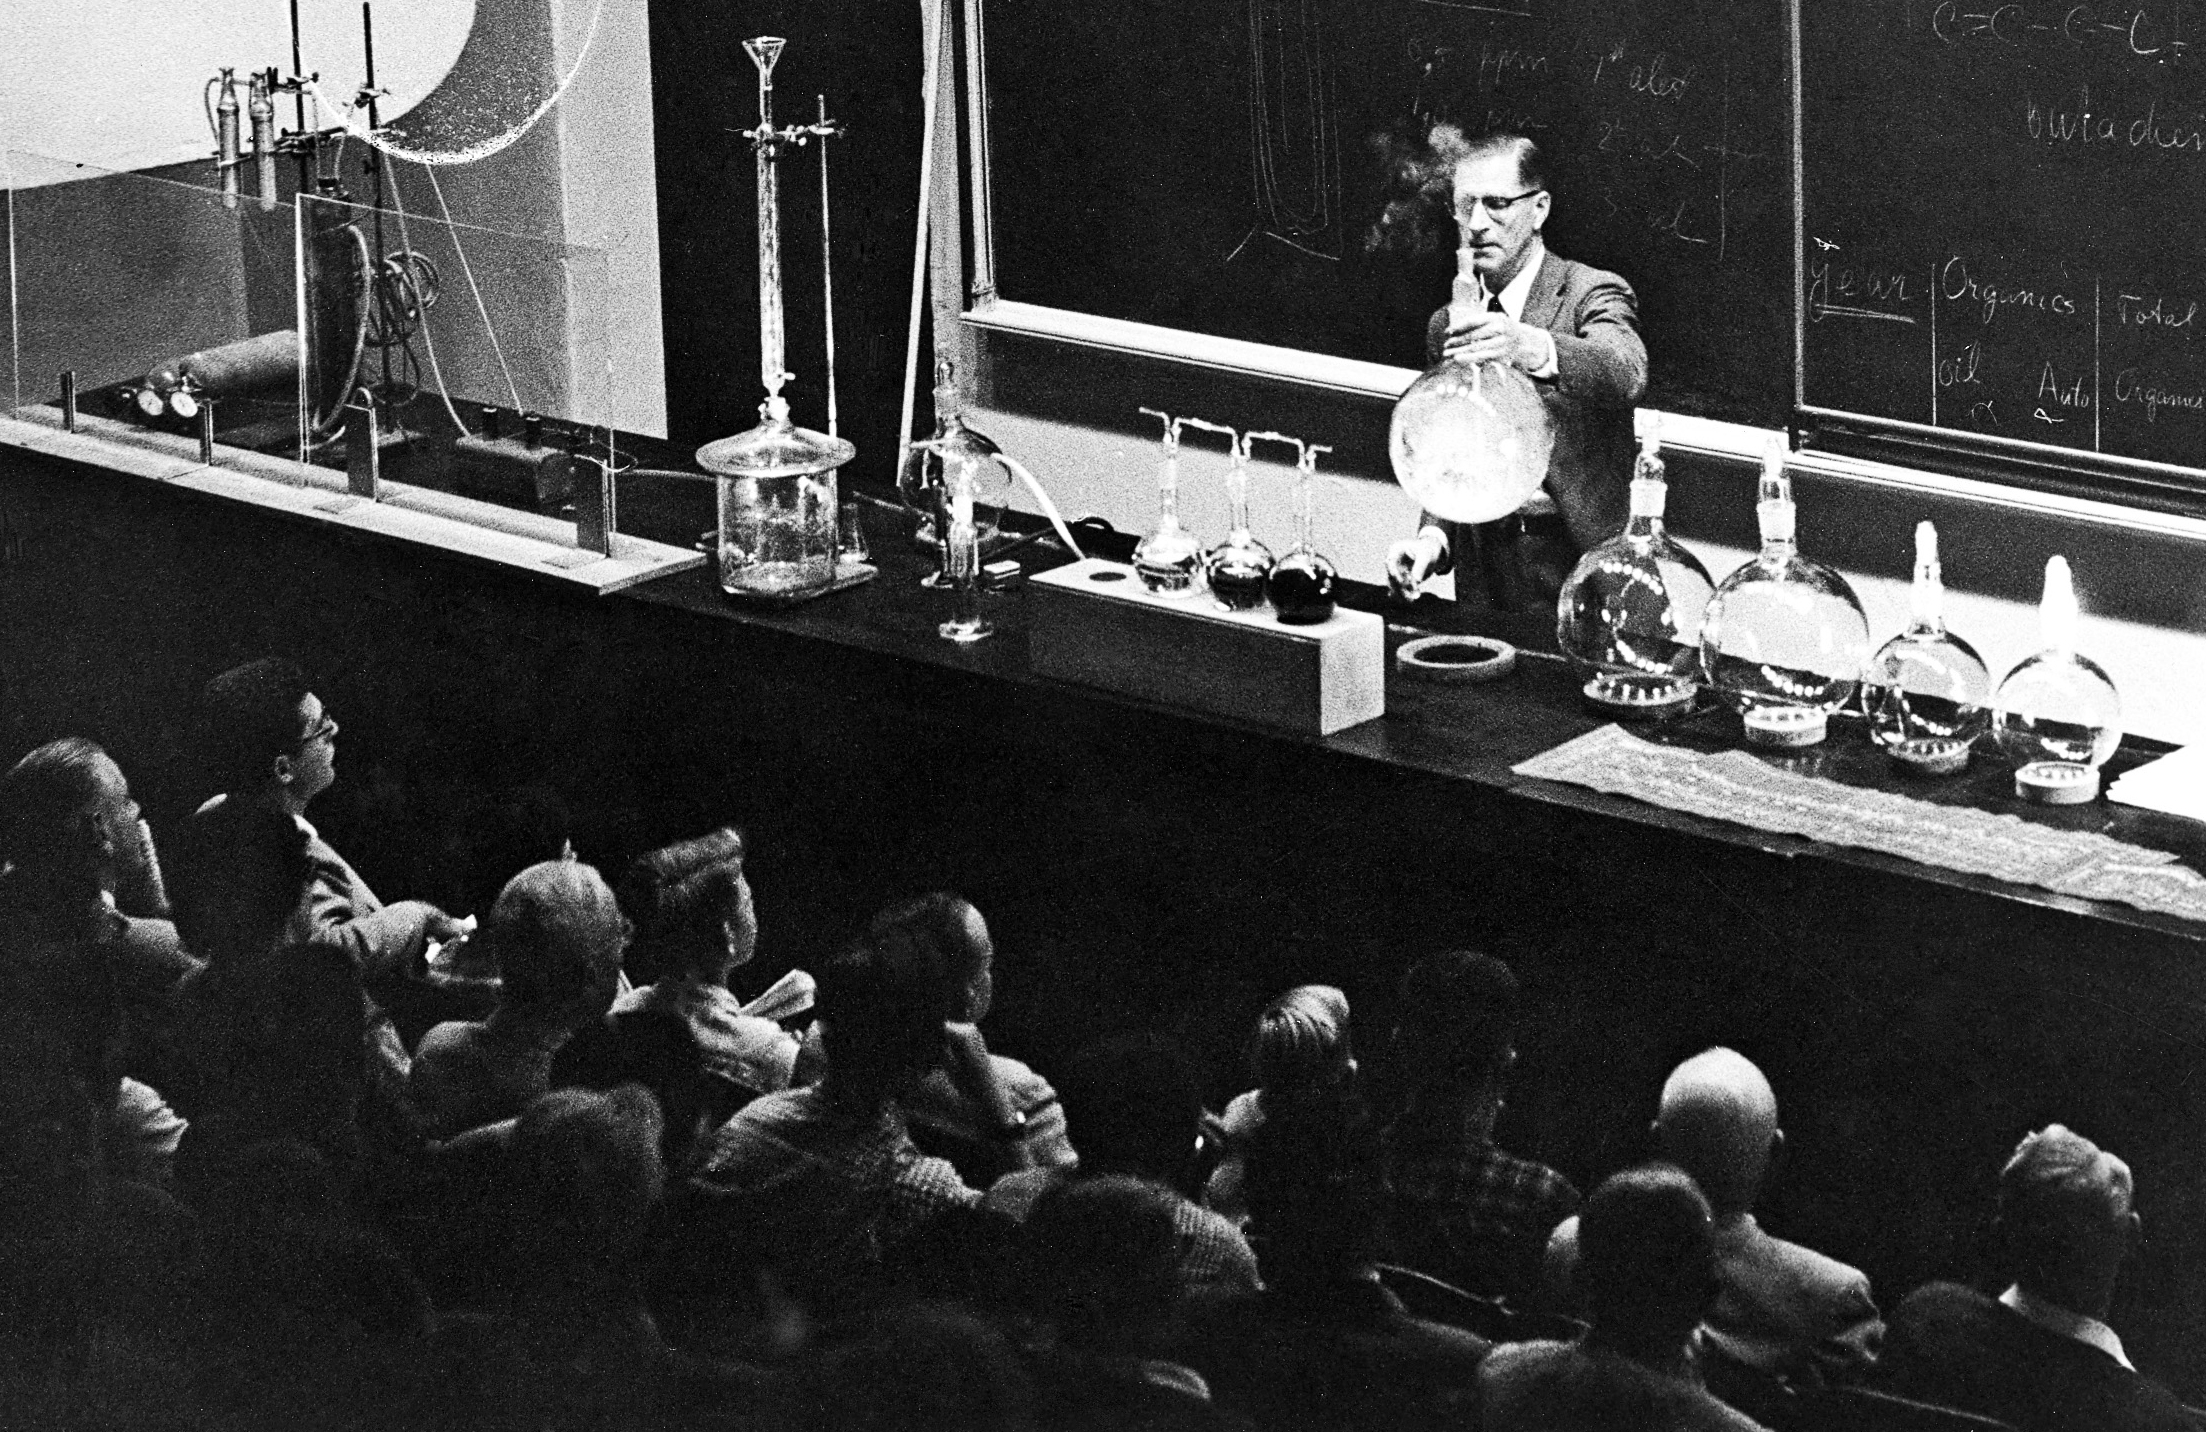 Haagen-Smit giving lecture on smog, ca. 1960s